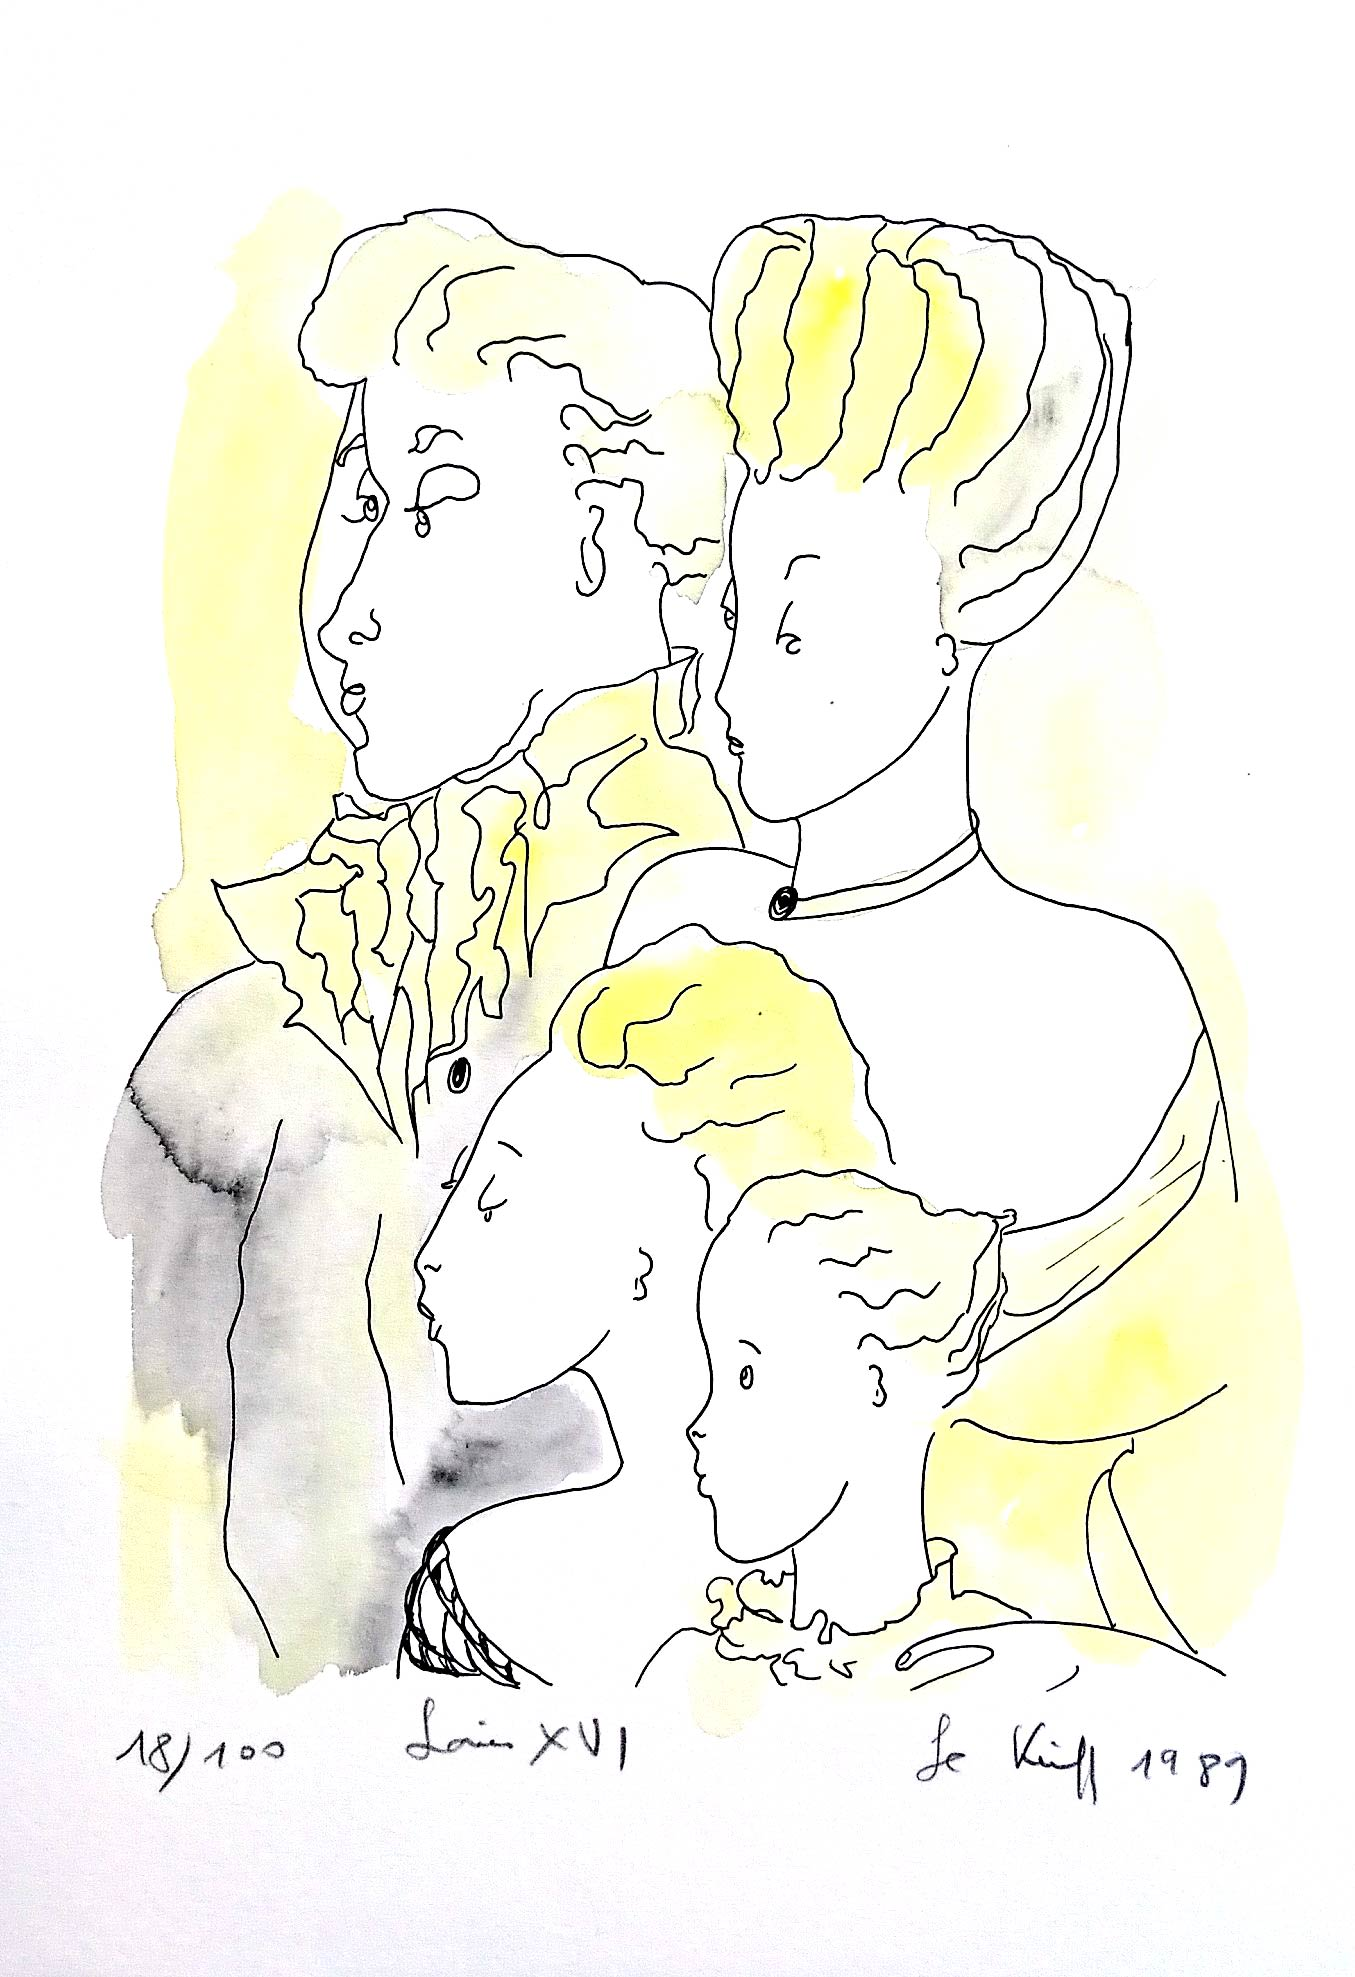 Louis XVI - Aquarelle - 1989